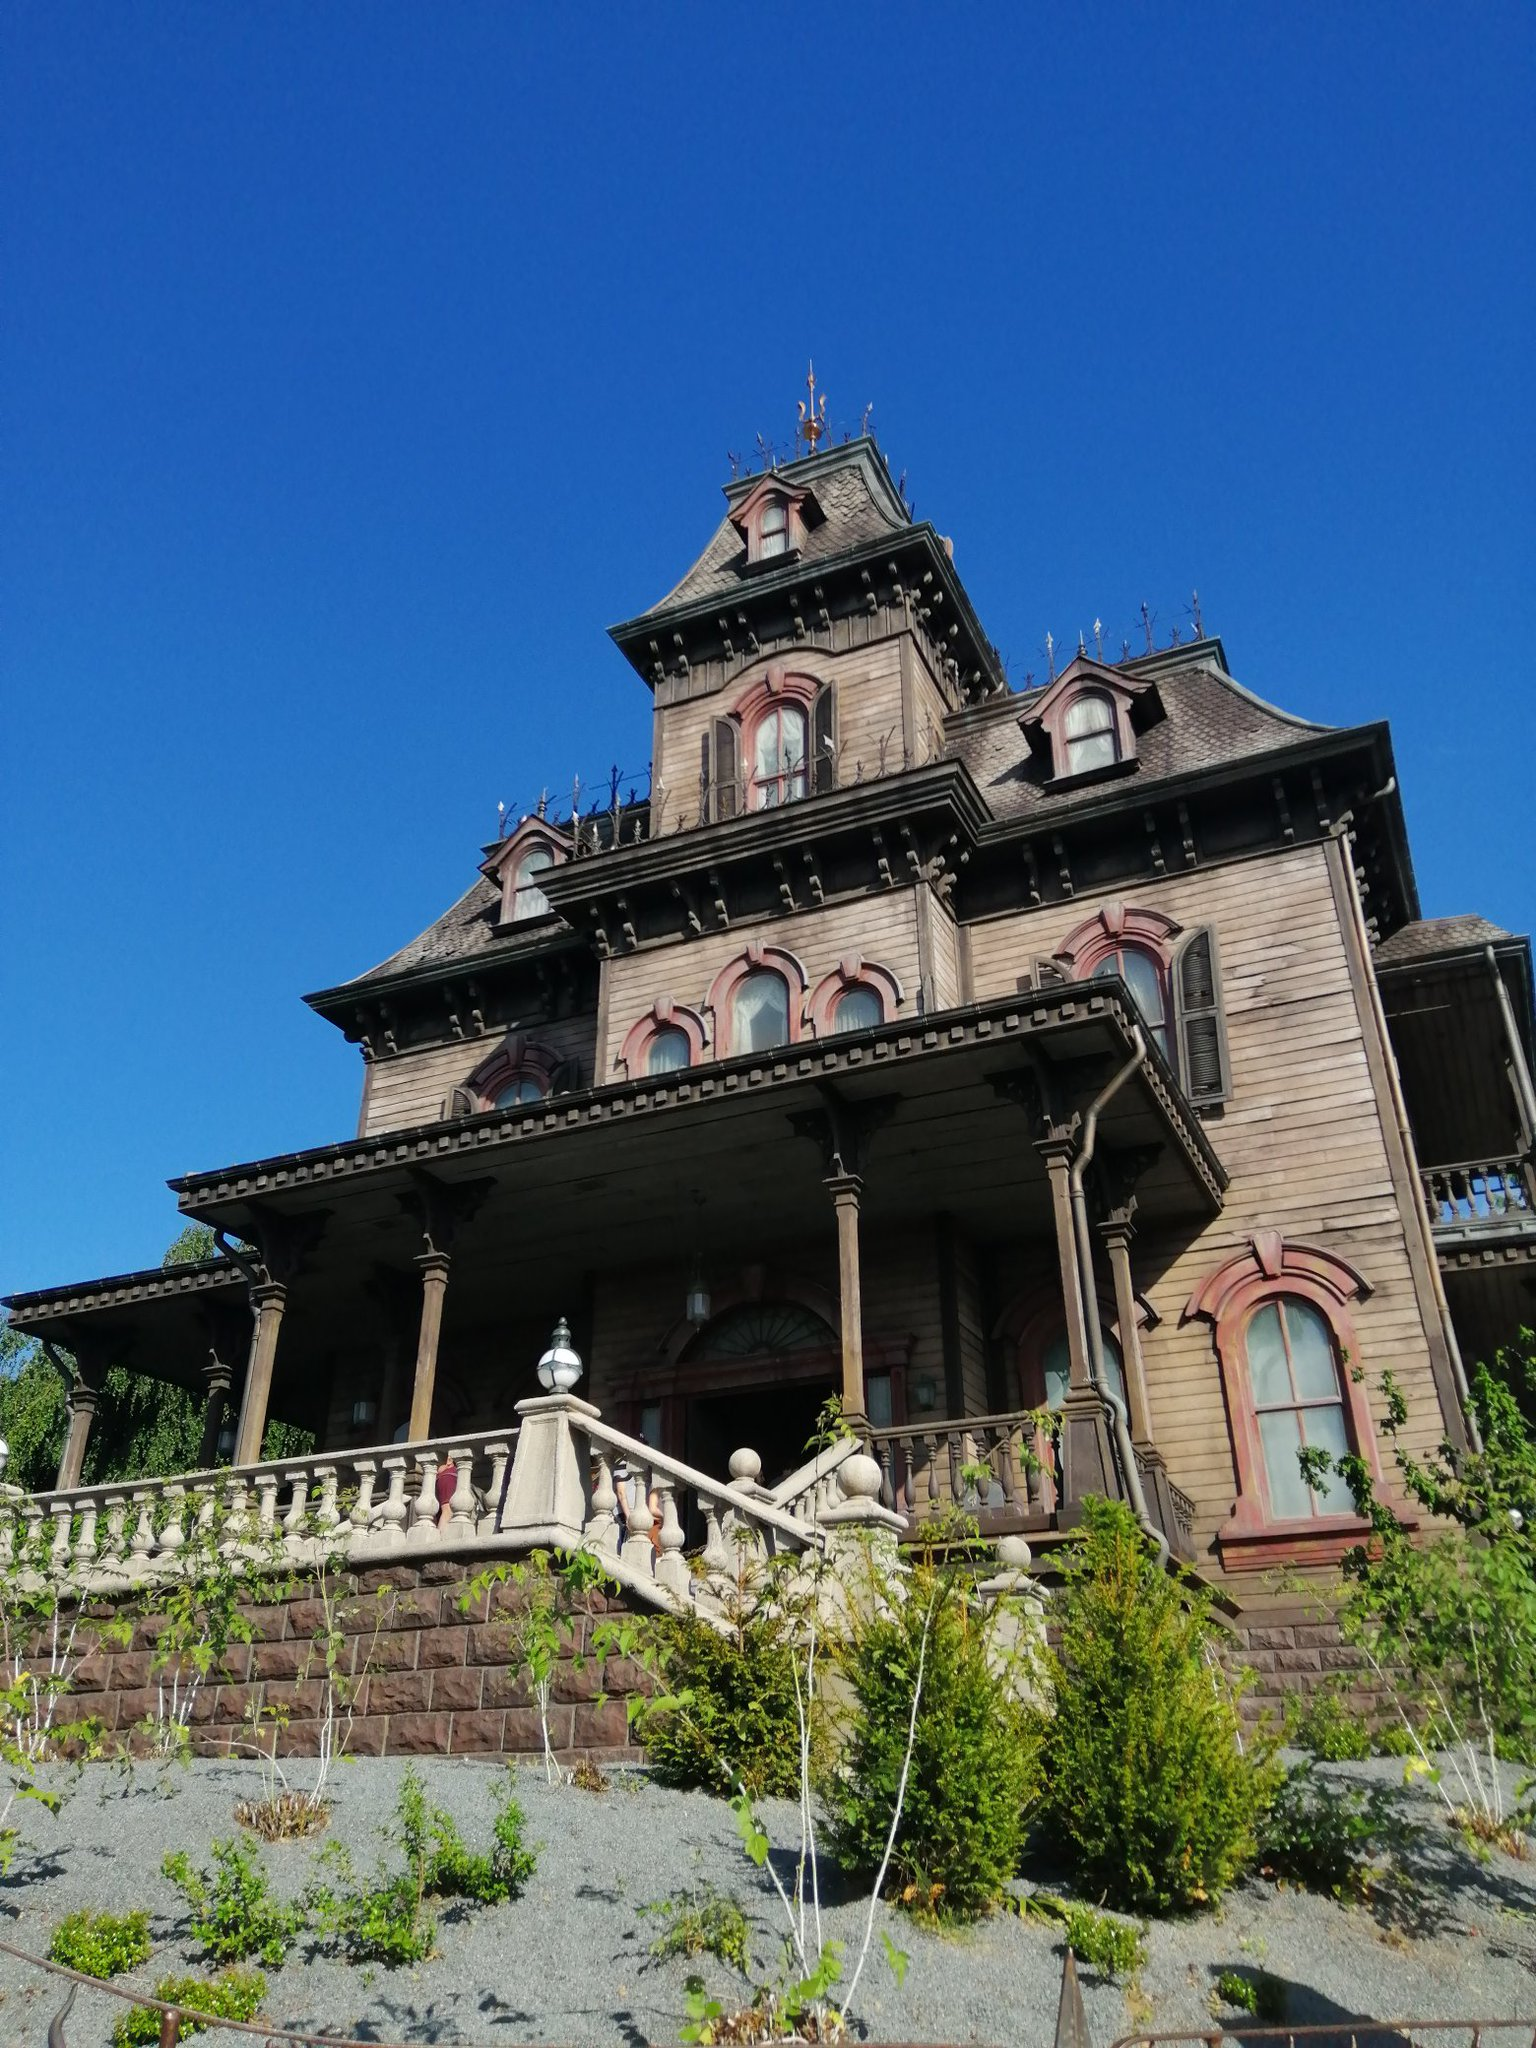 Blue sky over Phantom Manor https://t.co/LGi60C3hvd